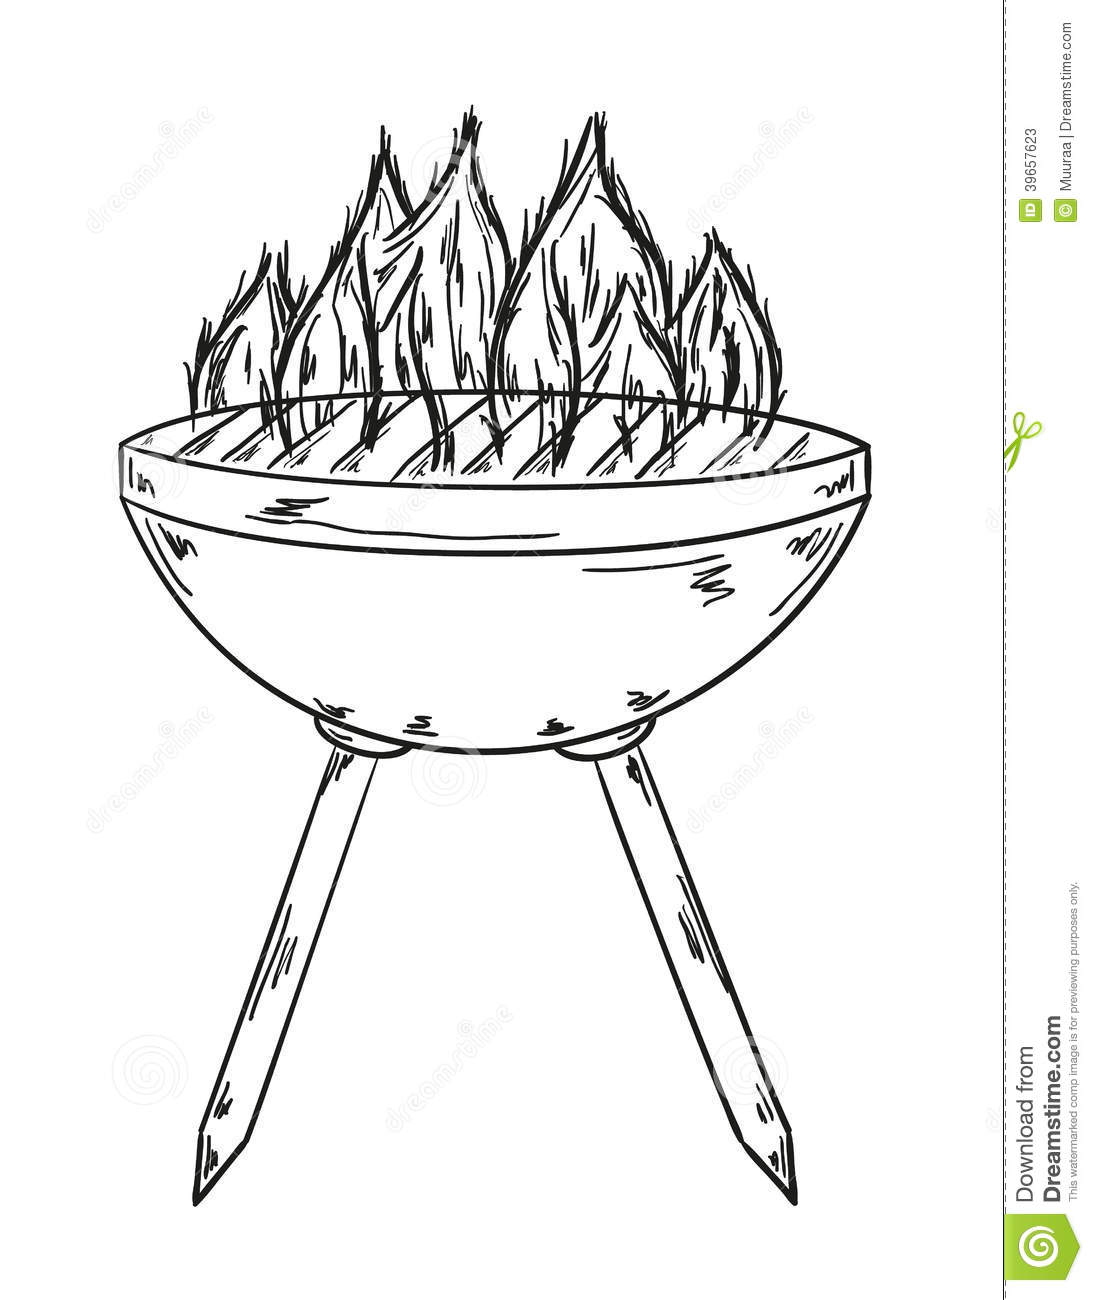 Sketch Of The Grill With Big Flames Stock Vector